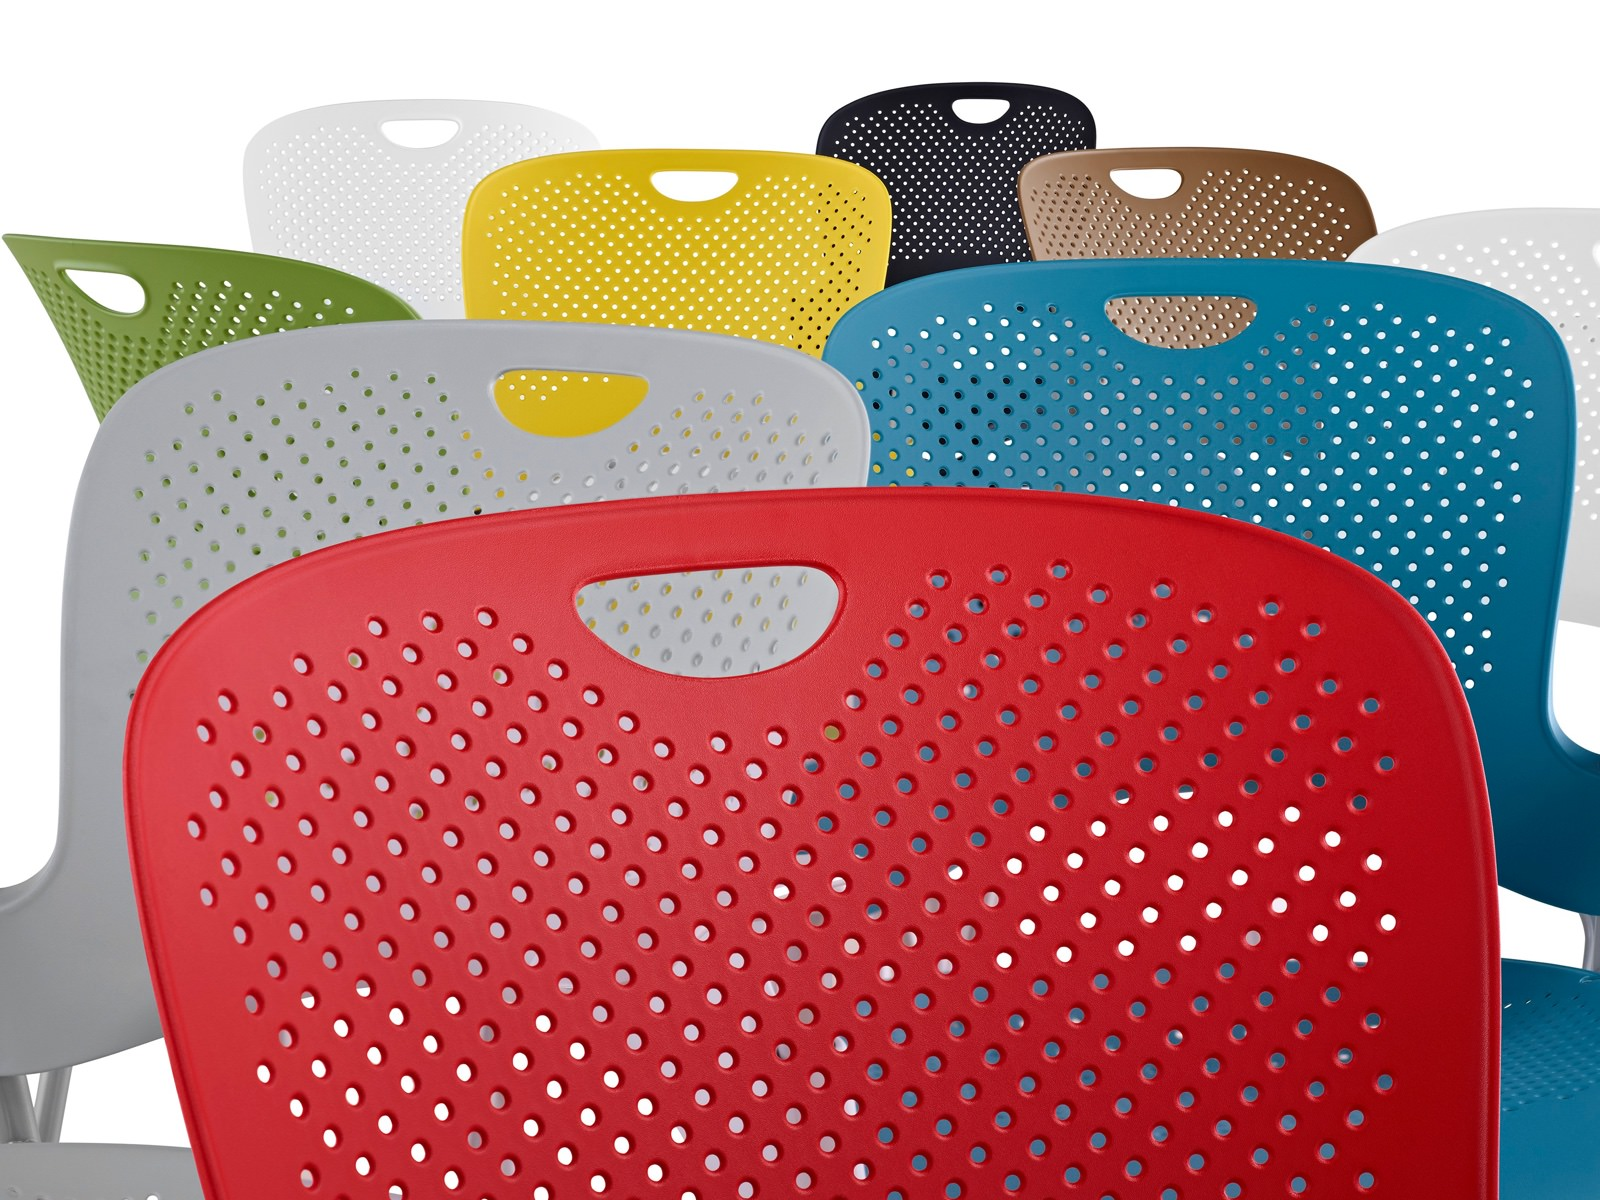 Caper Stacking Stools in various colors: red, gray, blue, green, yellow, brown, white, and black.